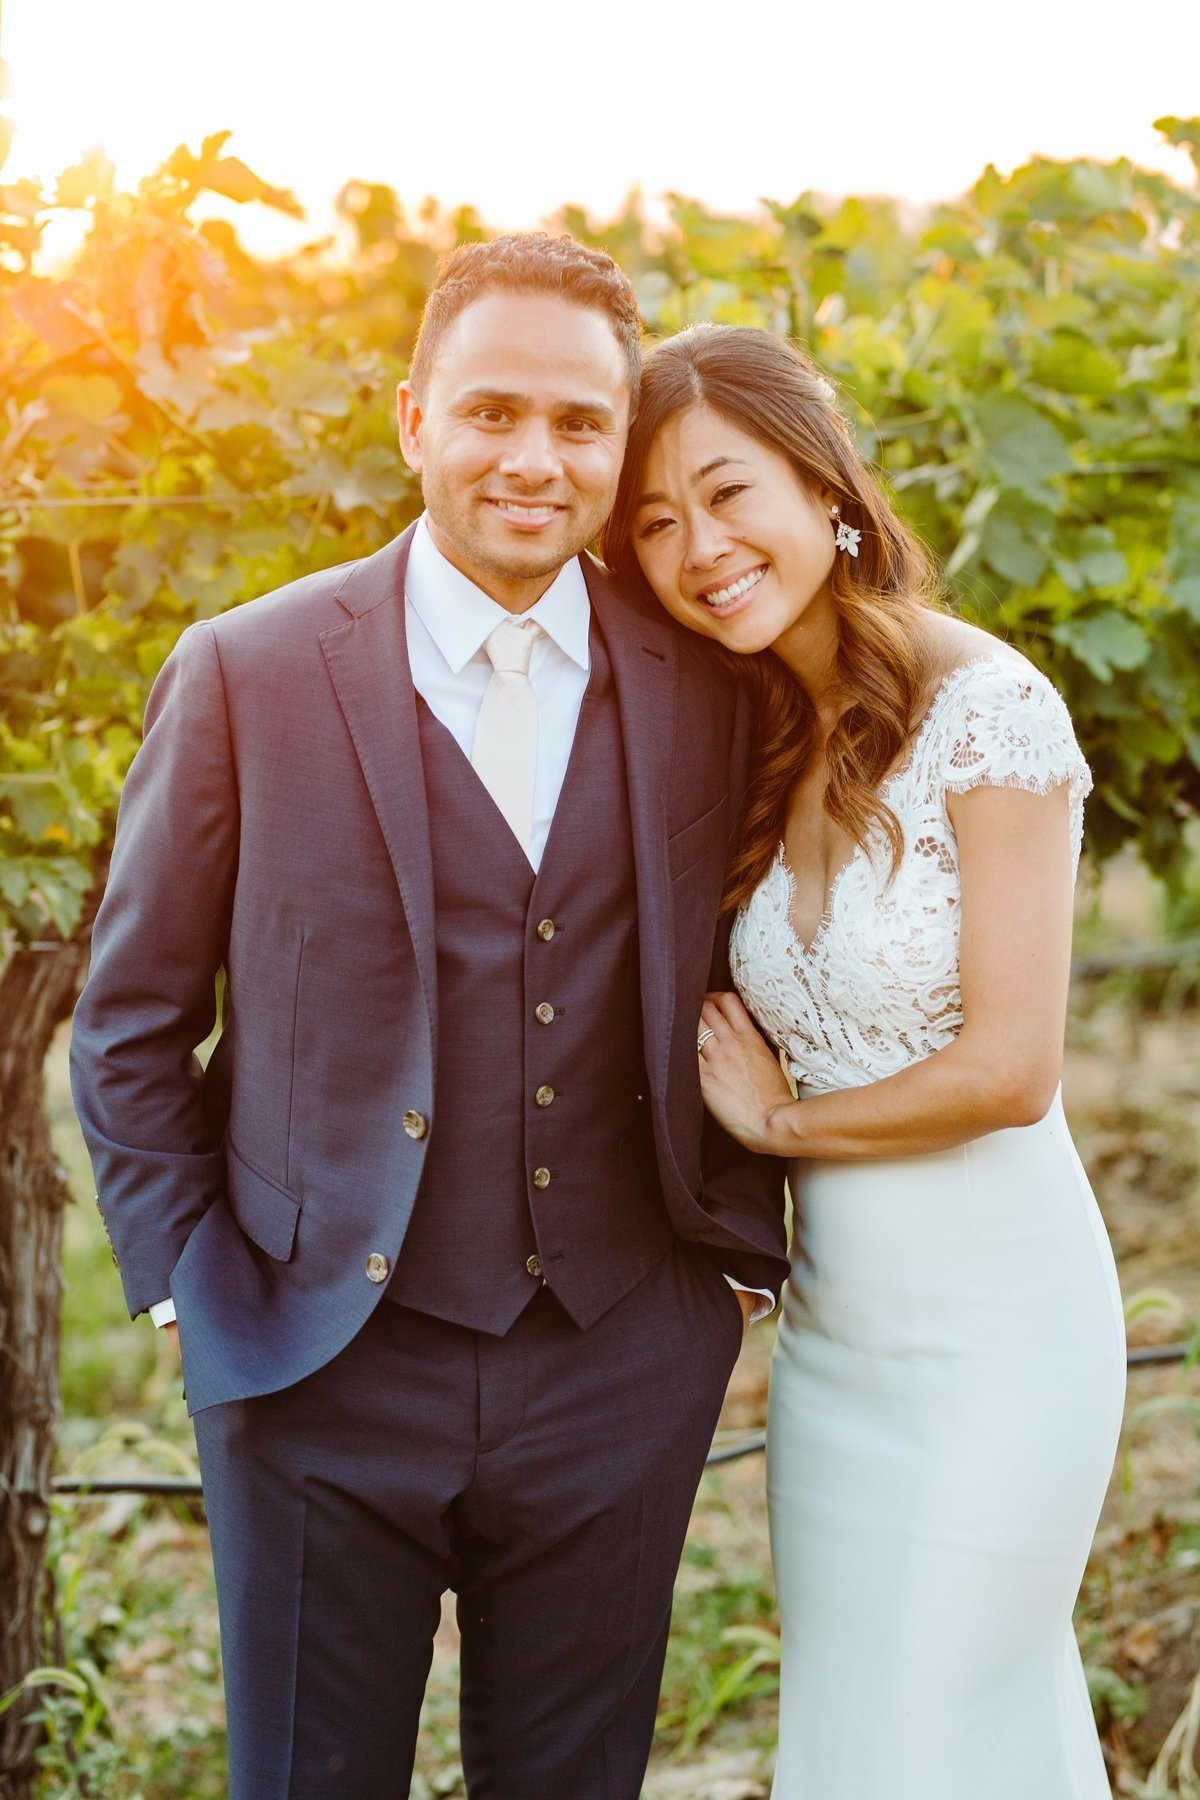 terra-blanca-winery-wedding-washington-seattle-cameron-zegers-0006